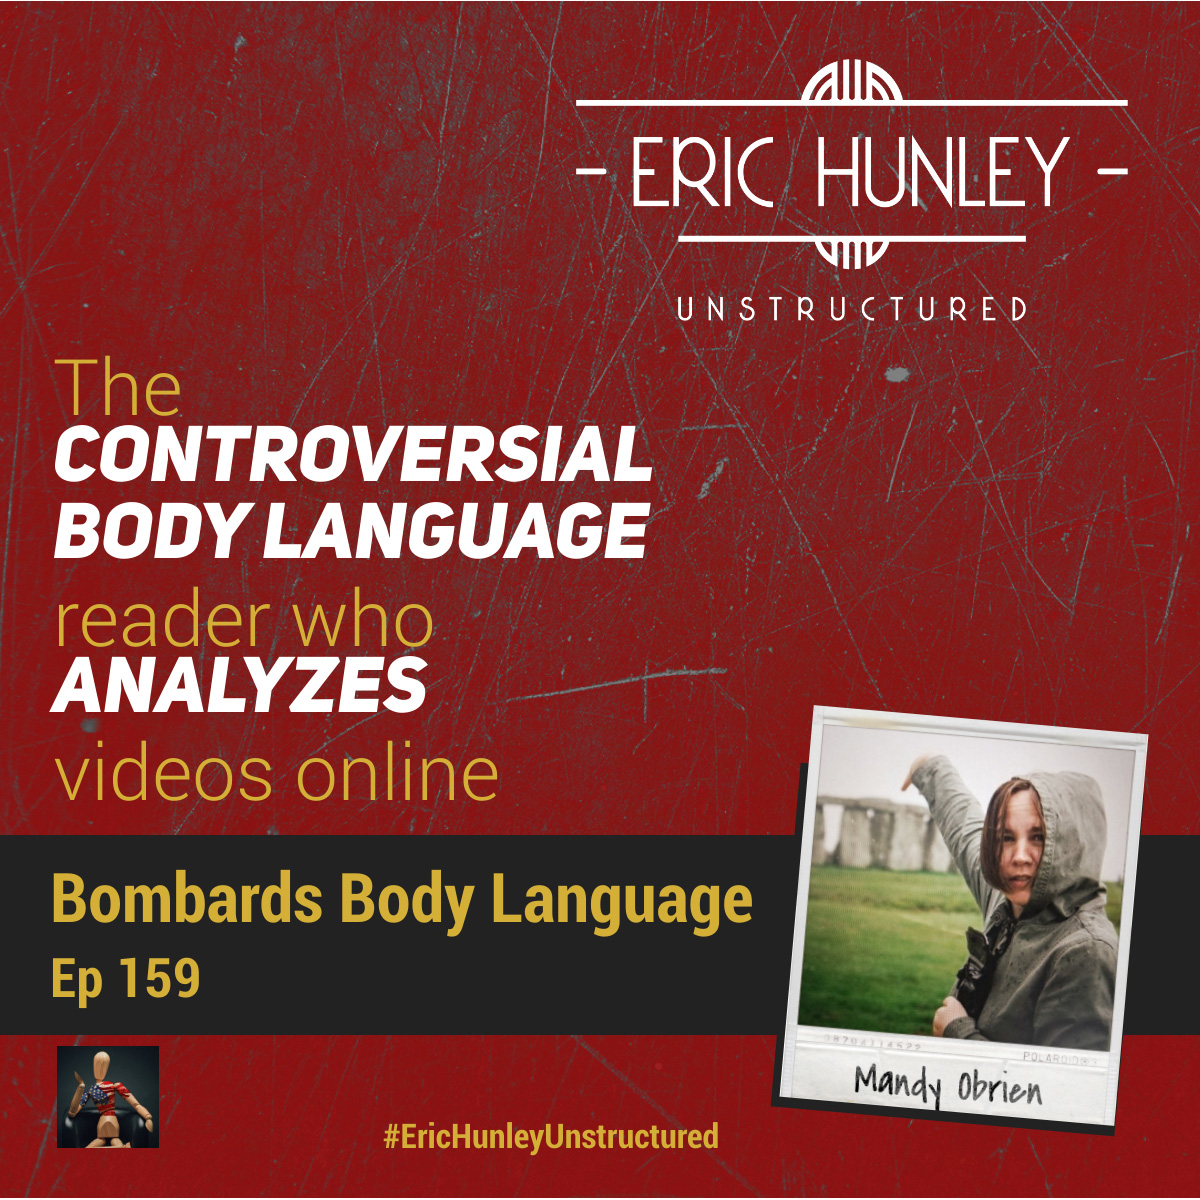 Eric Hunley Unstructured Podcast - 159 Mandy Obrien Square Post